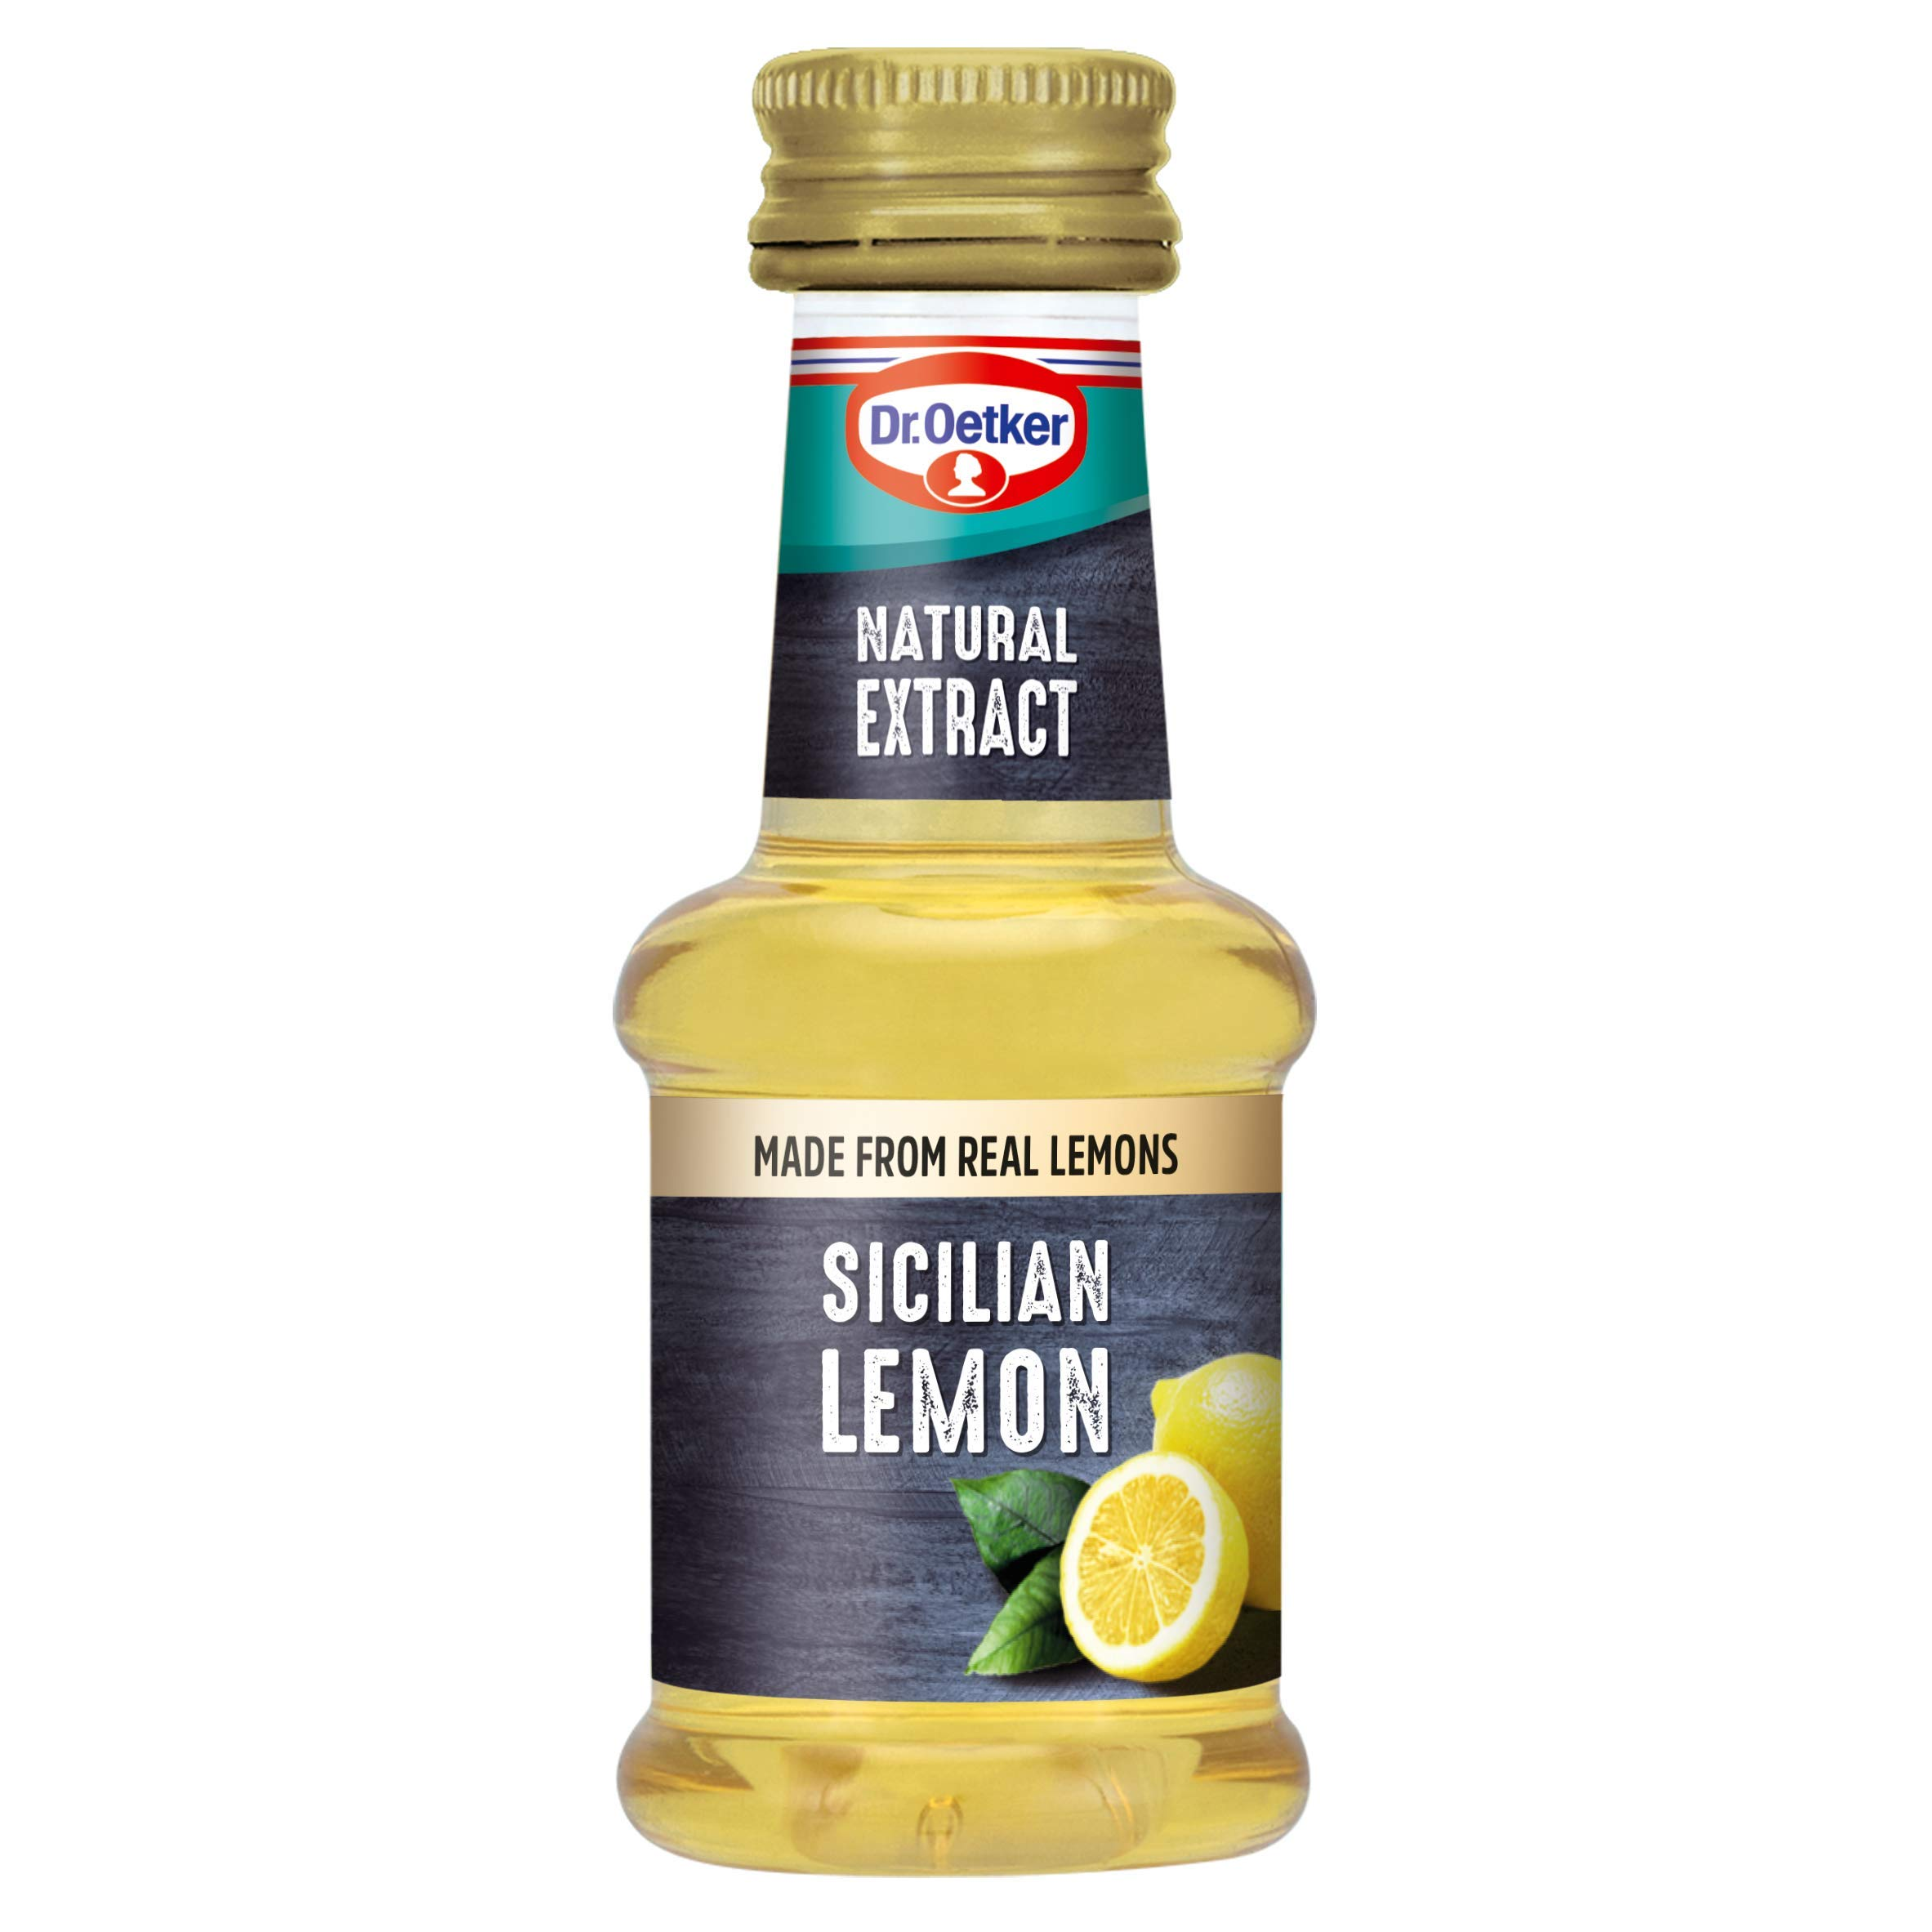 Dr. Oetker Sicilian Lemon Extract, 35ml